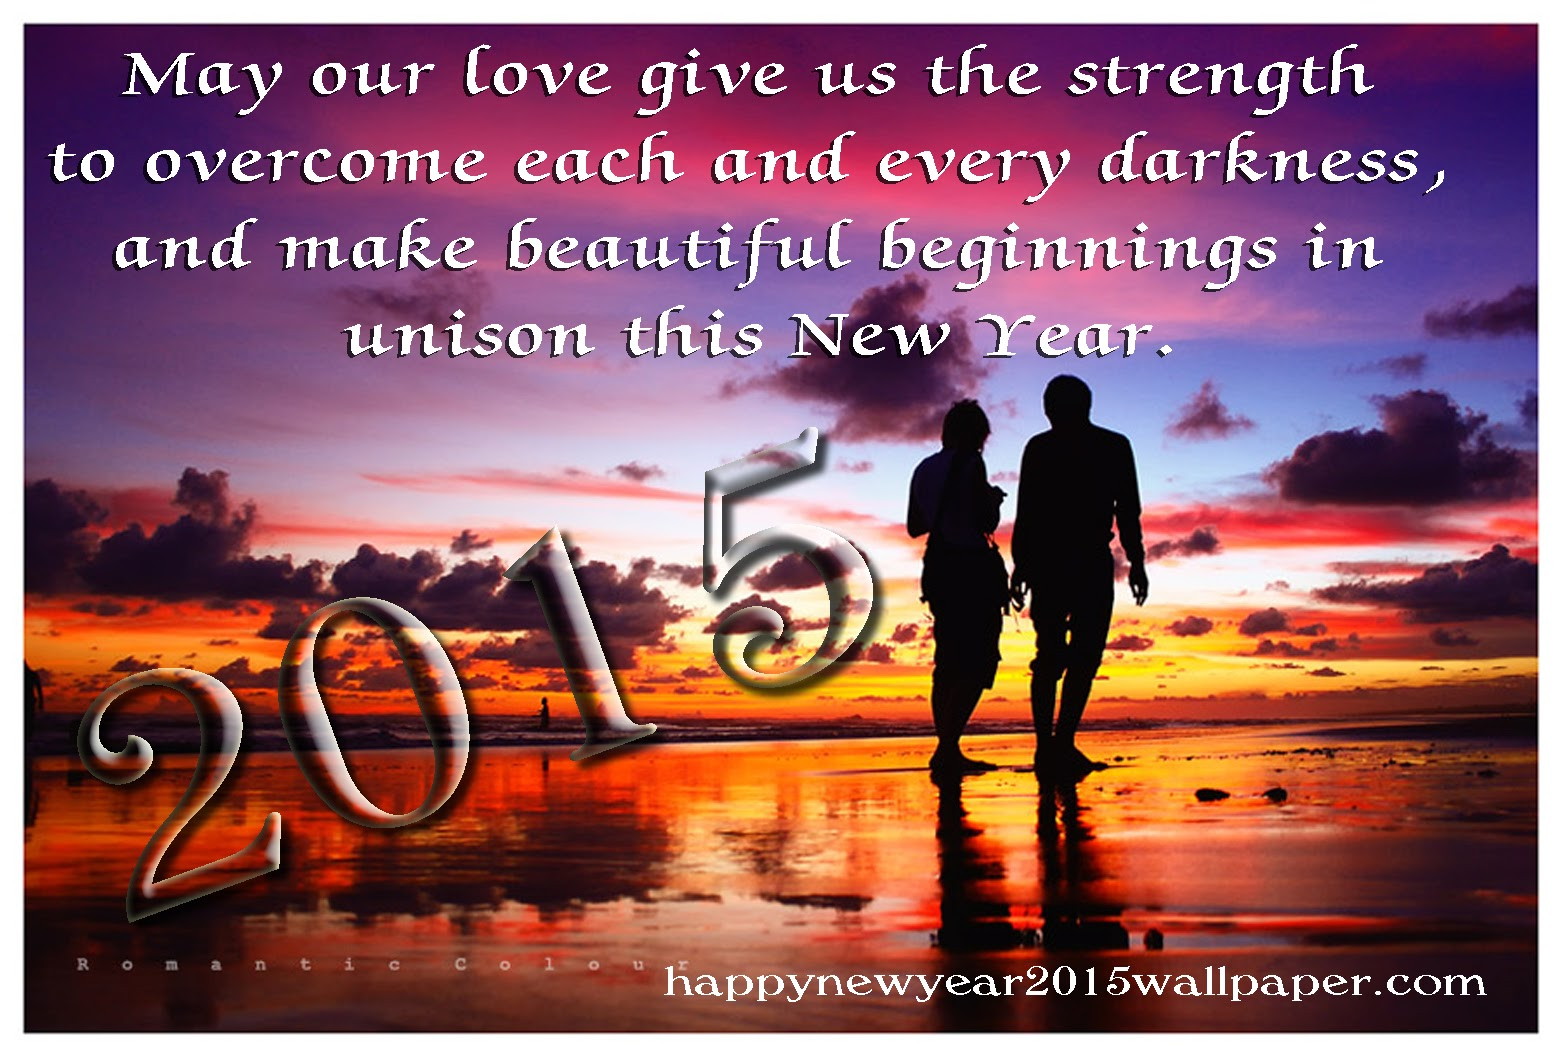 Happy New Year 2015 Wallpaper Wishes Sms Google